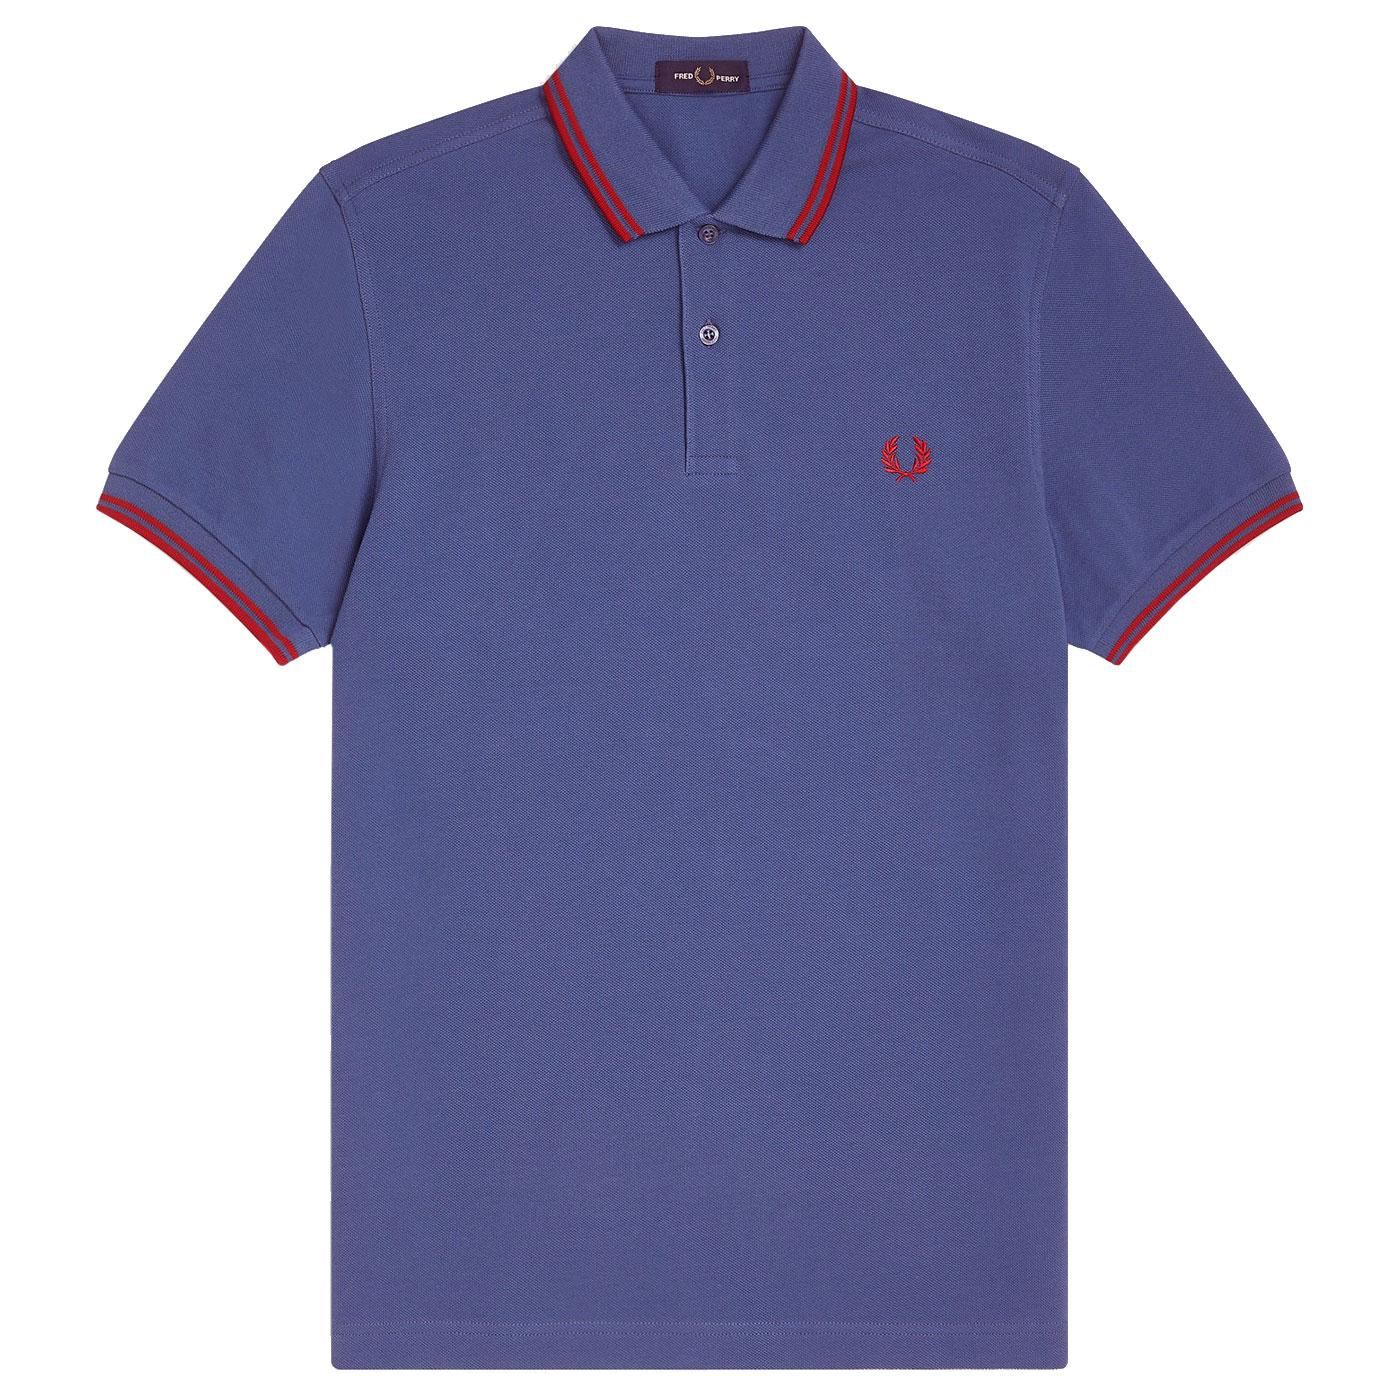 FRED PERRY M3600 Mod Twin Tipped Polo MIDNIGHT